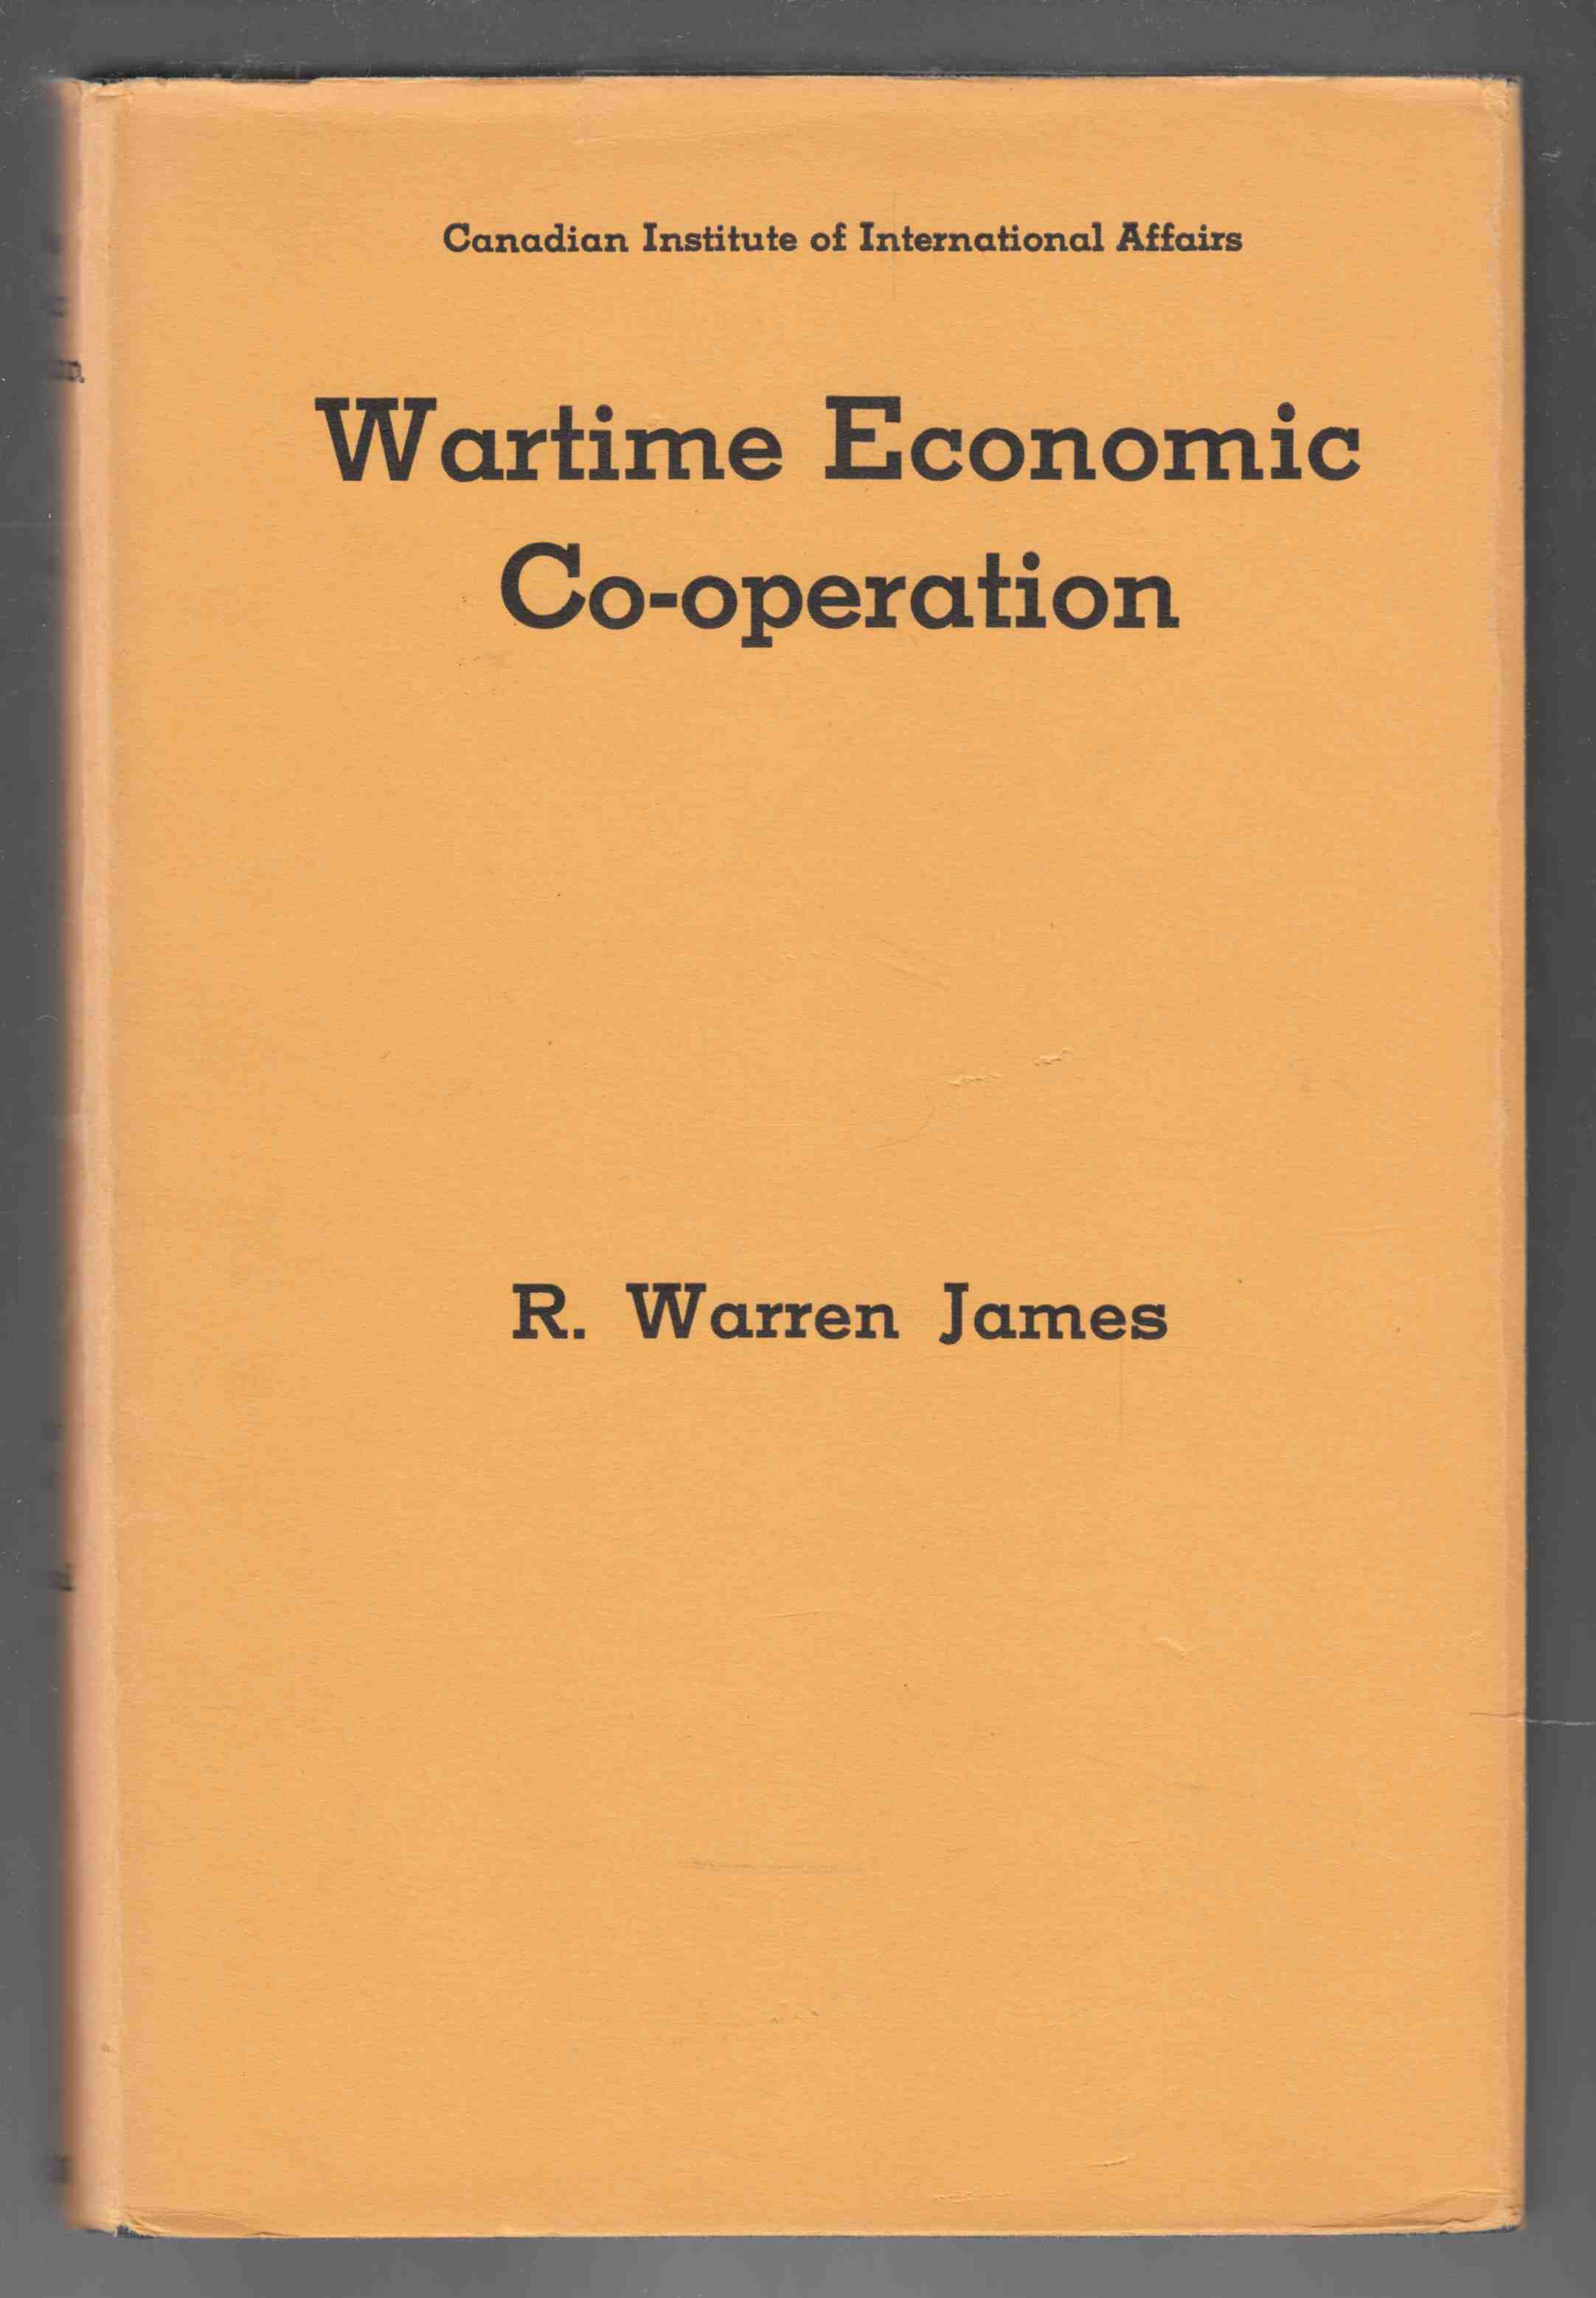 Image for Wartime Economic Co-Operation A Study of Relations between Canada and the United States